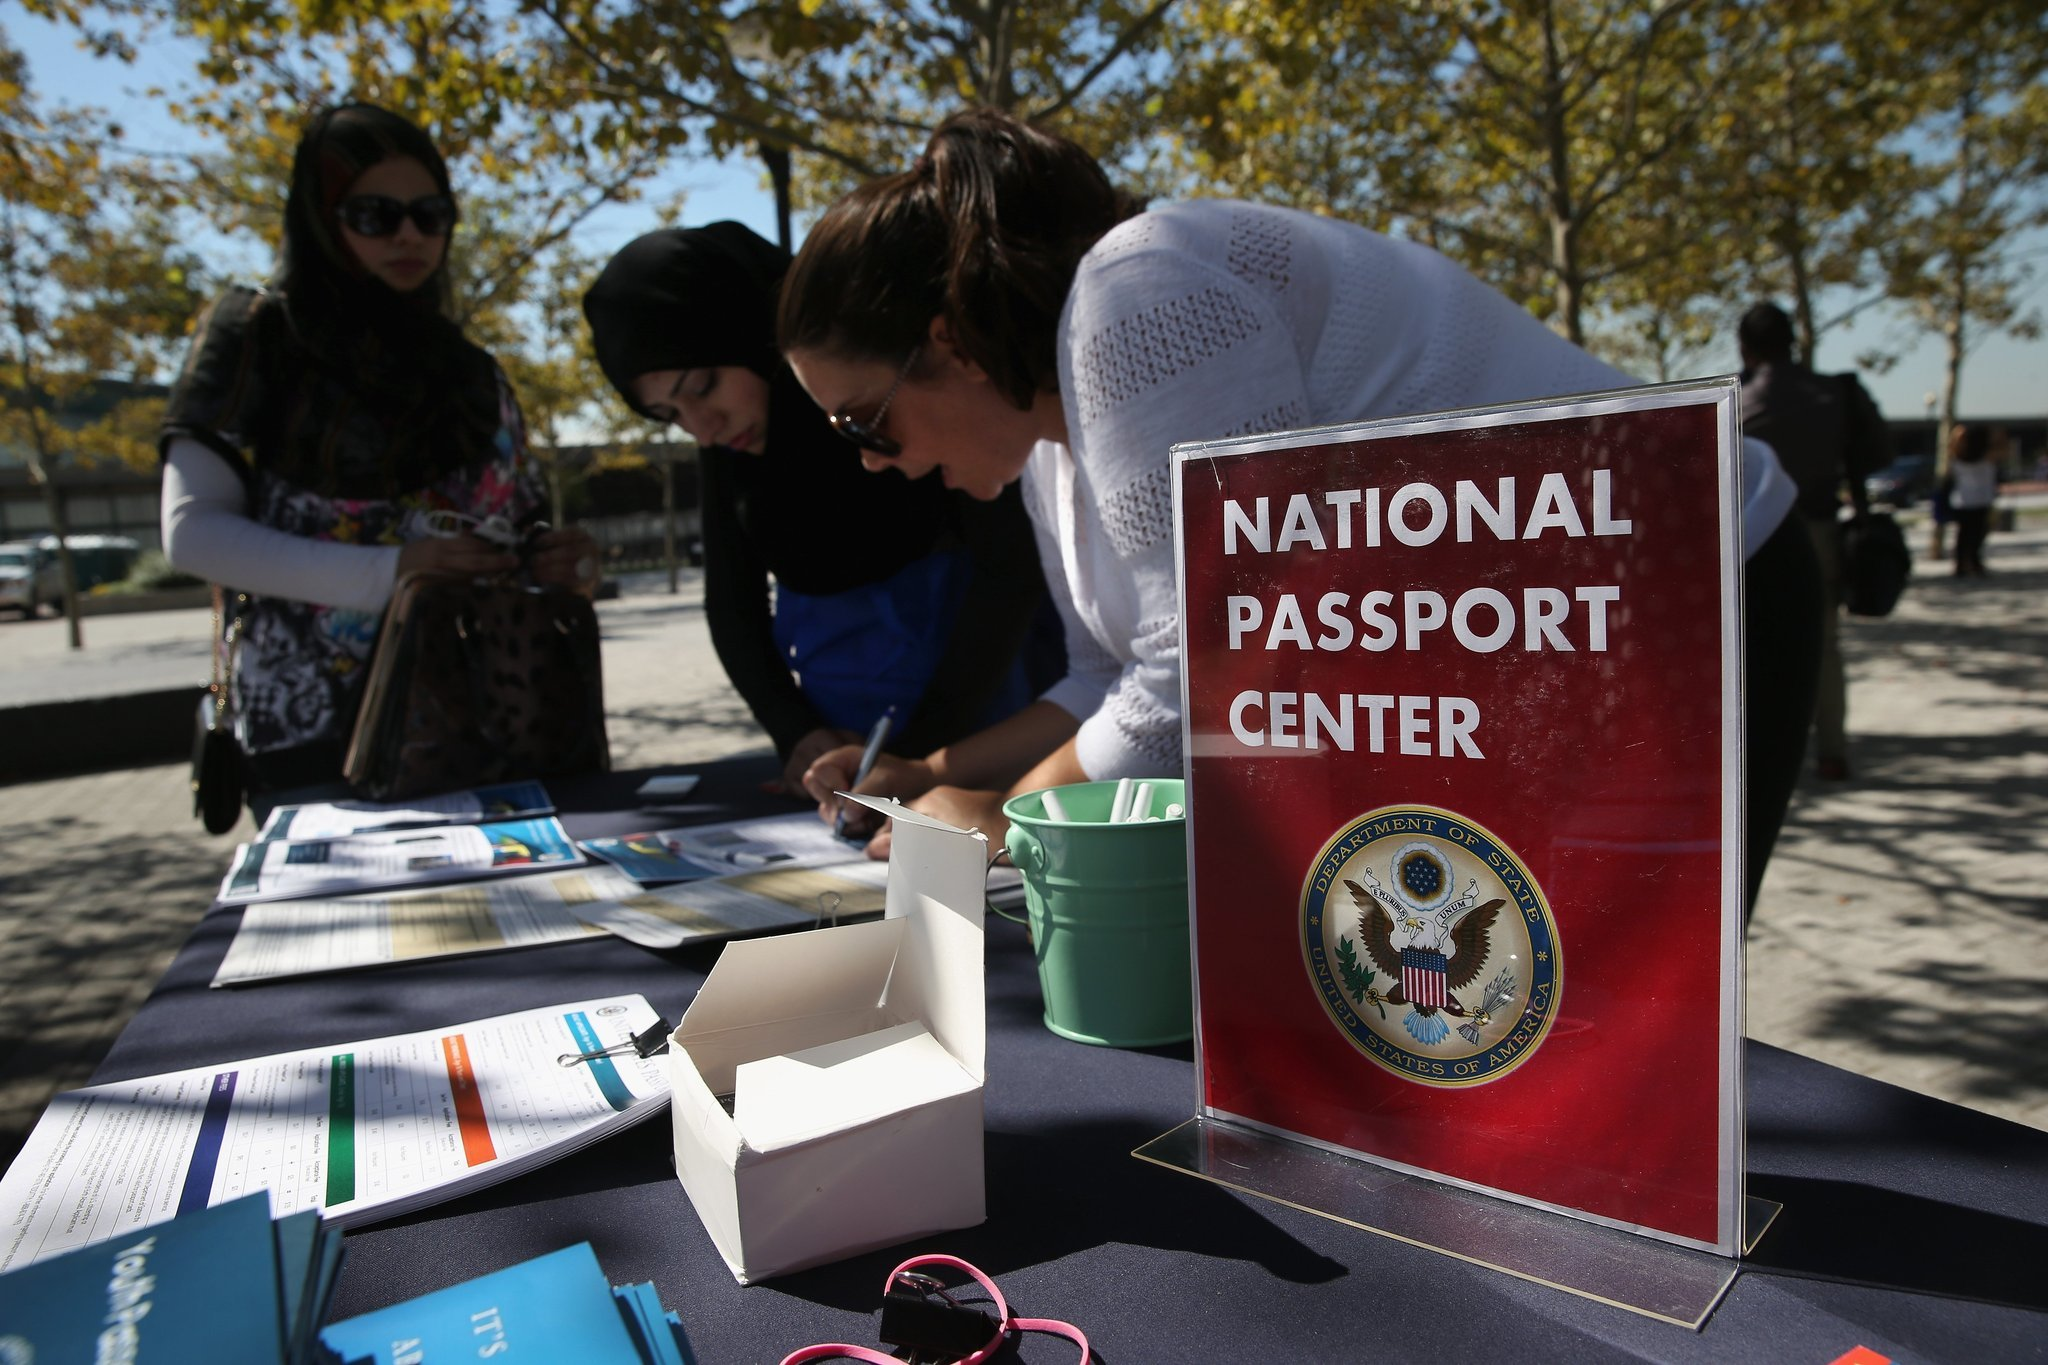 Saturday Is National Passport Day: Here's Where You Can Apply For Or Renew  Passports Without An Appointment  La Times